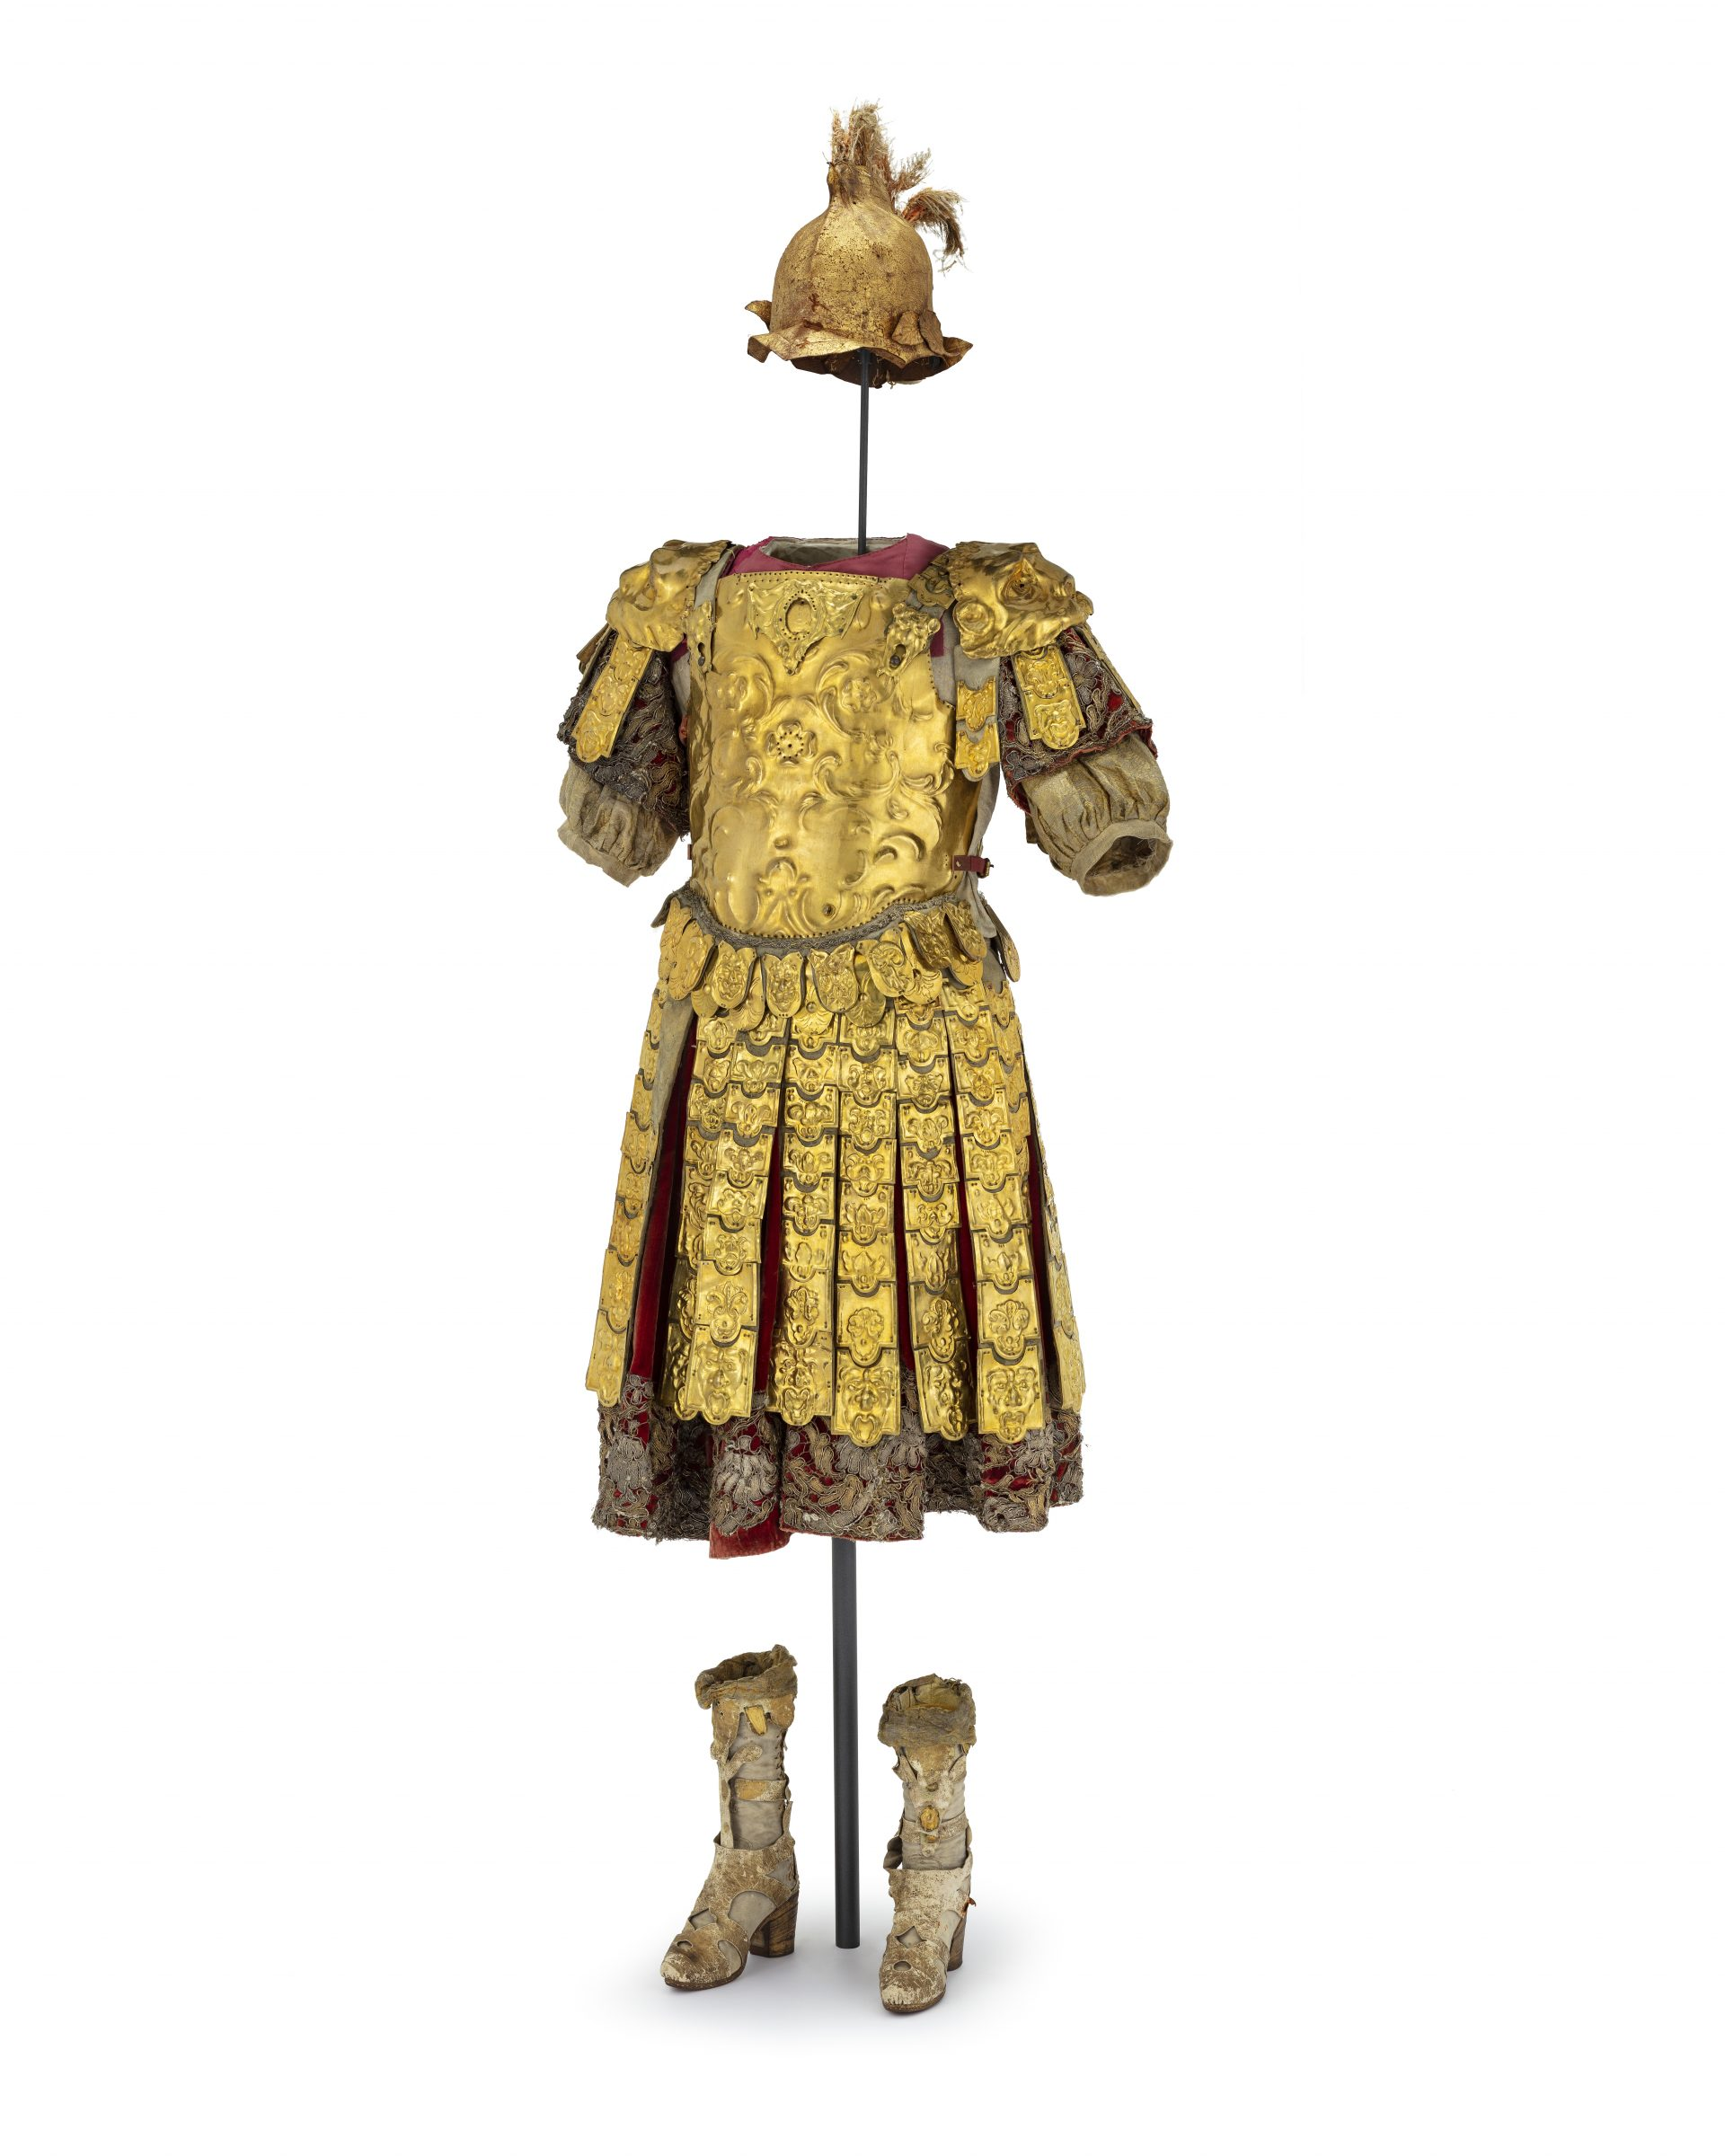 Gold-shining decorative armor intended for knight games.